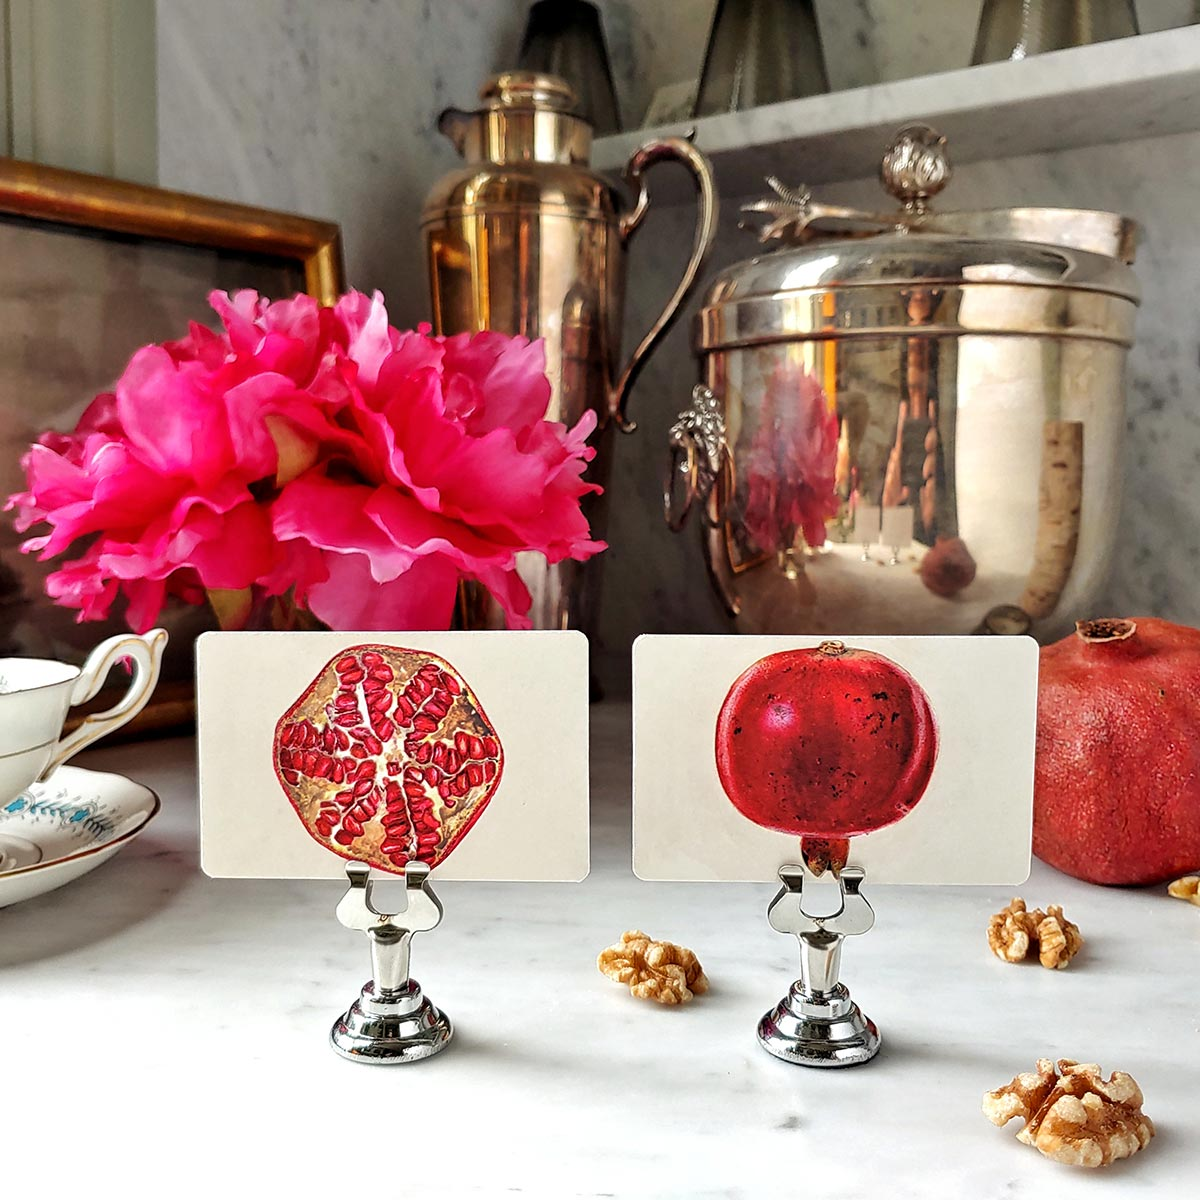 The Punctilious Mr. P's 'Pomegranate' place cards